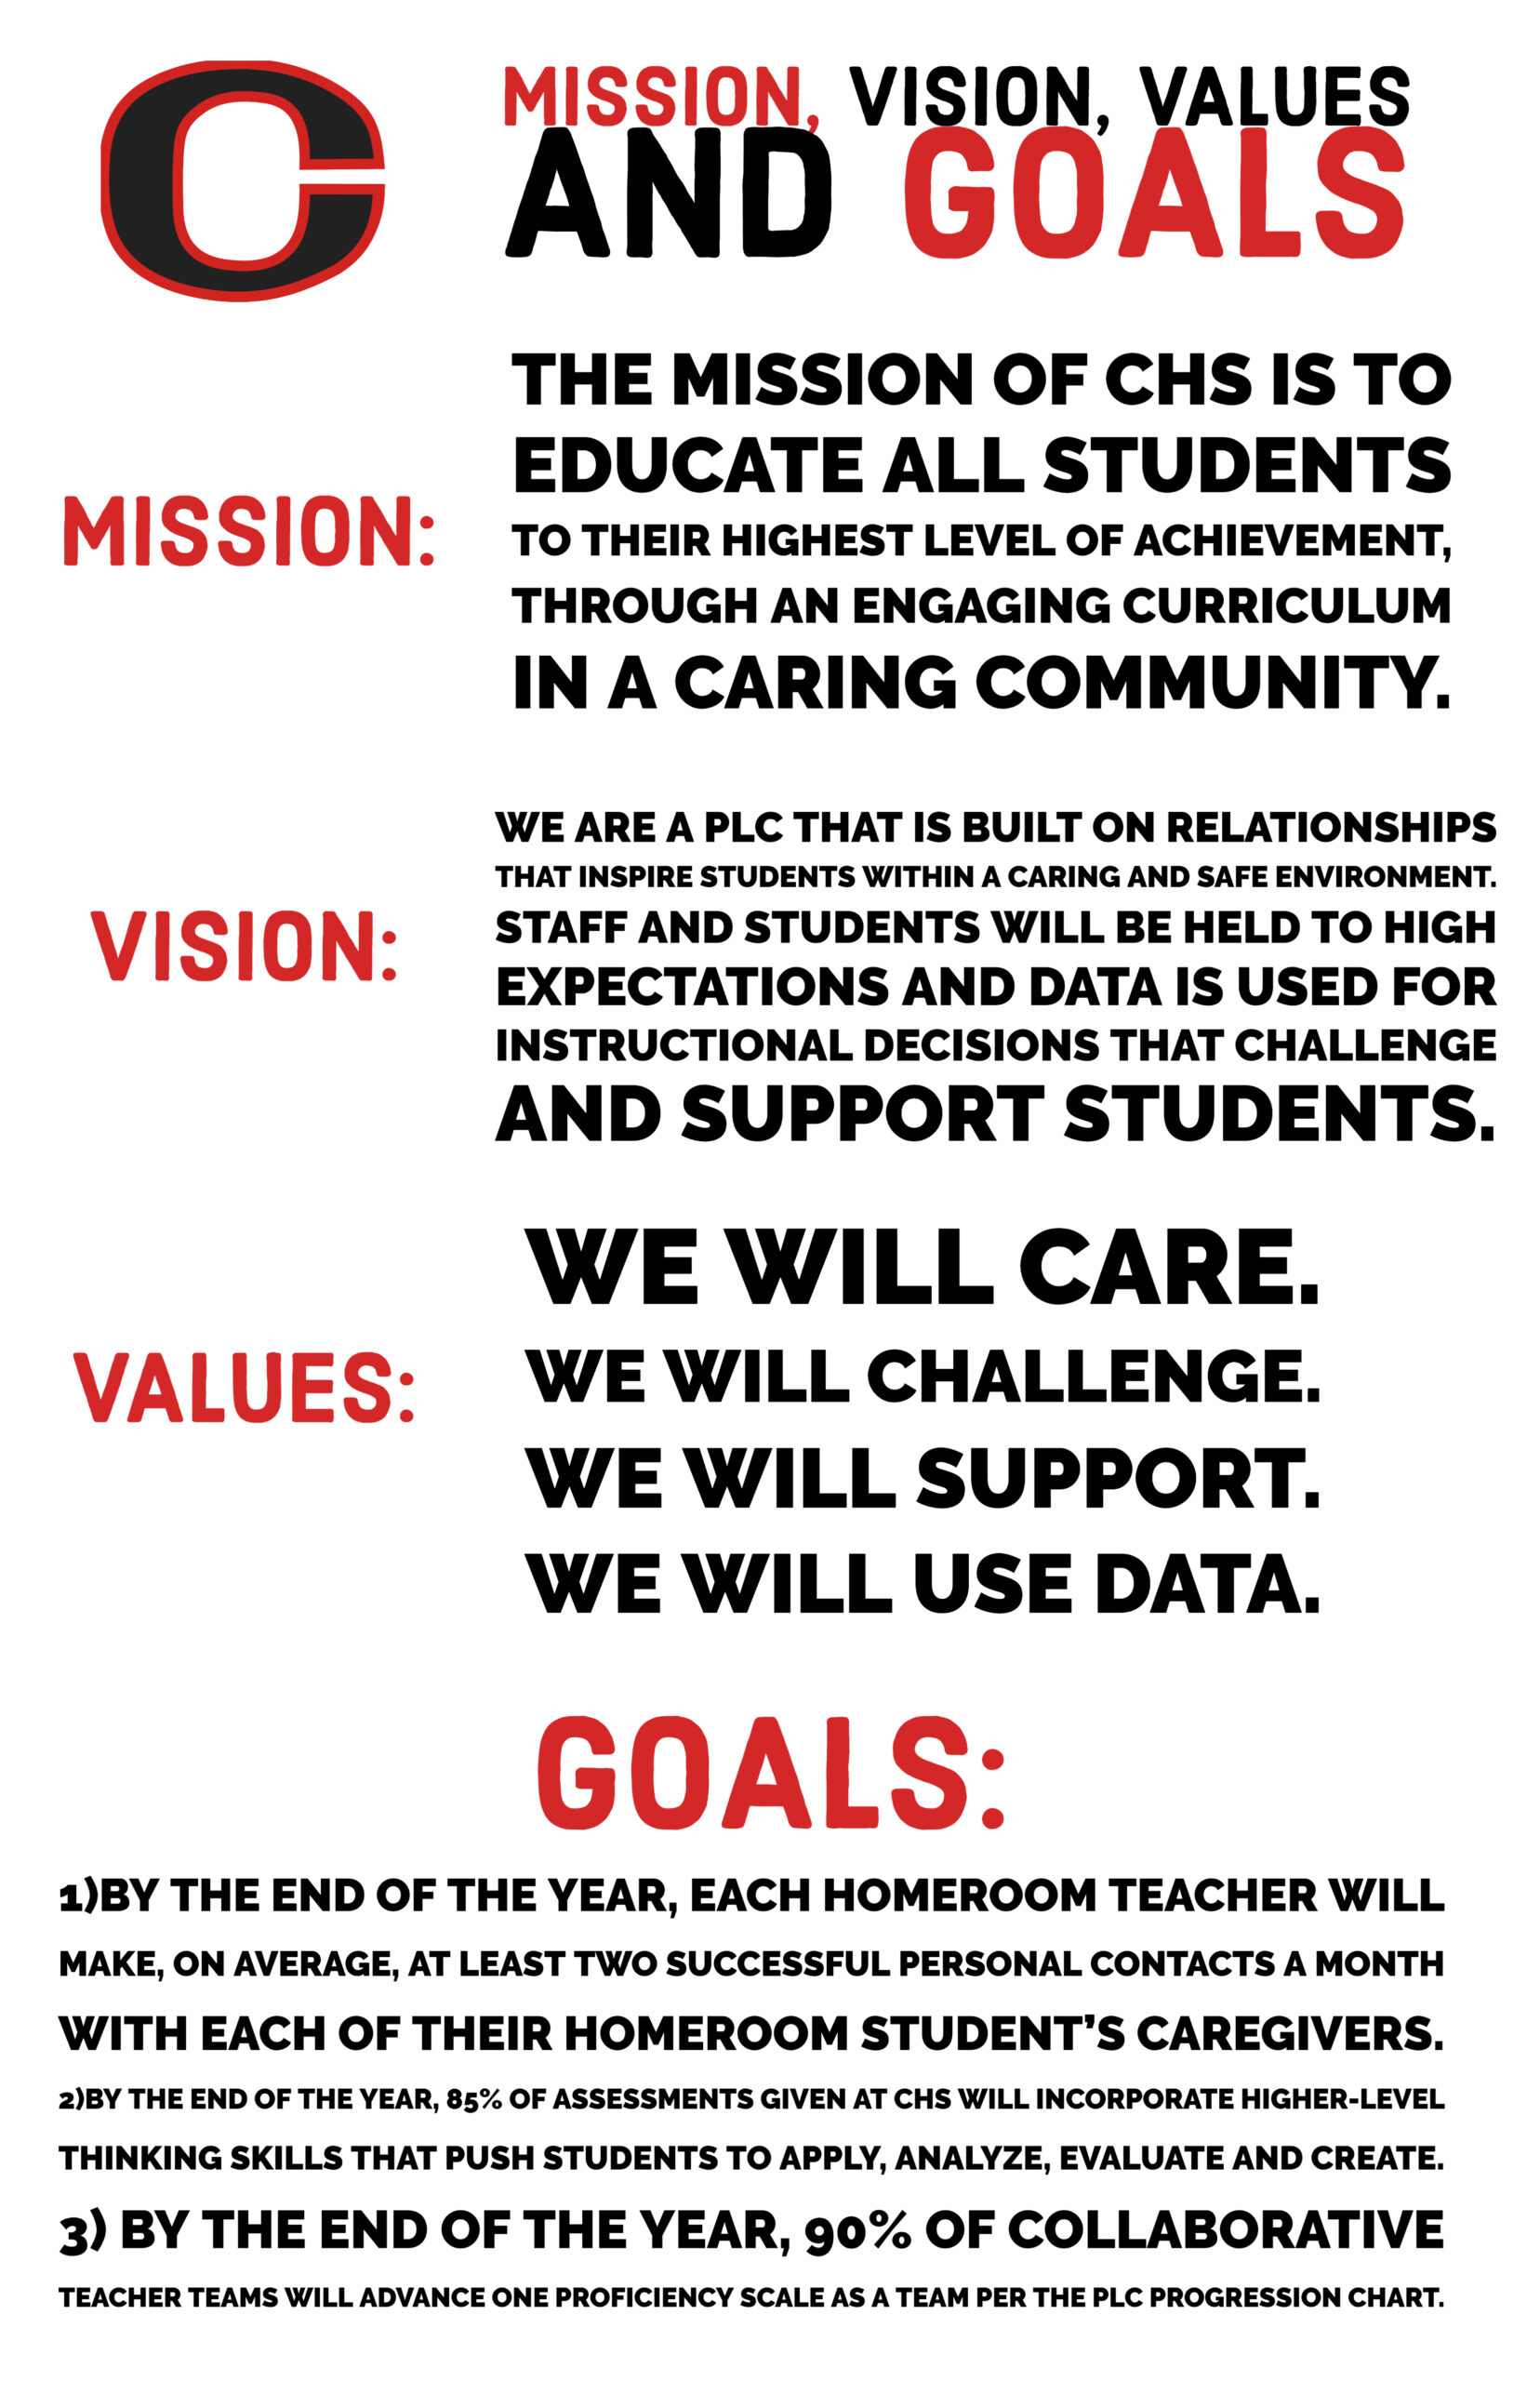 Mission-Vision-Values-and-Goals-1-scaled